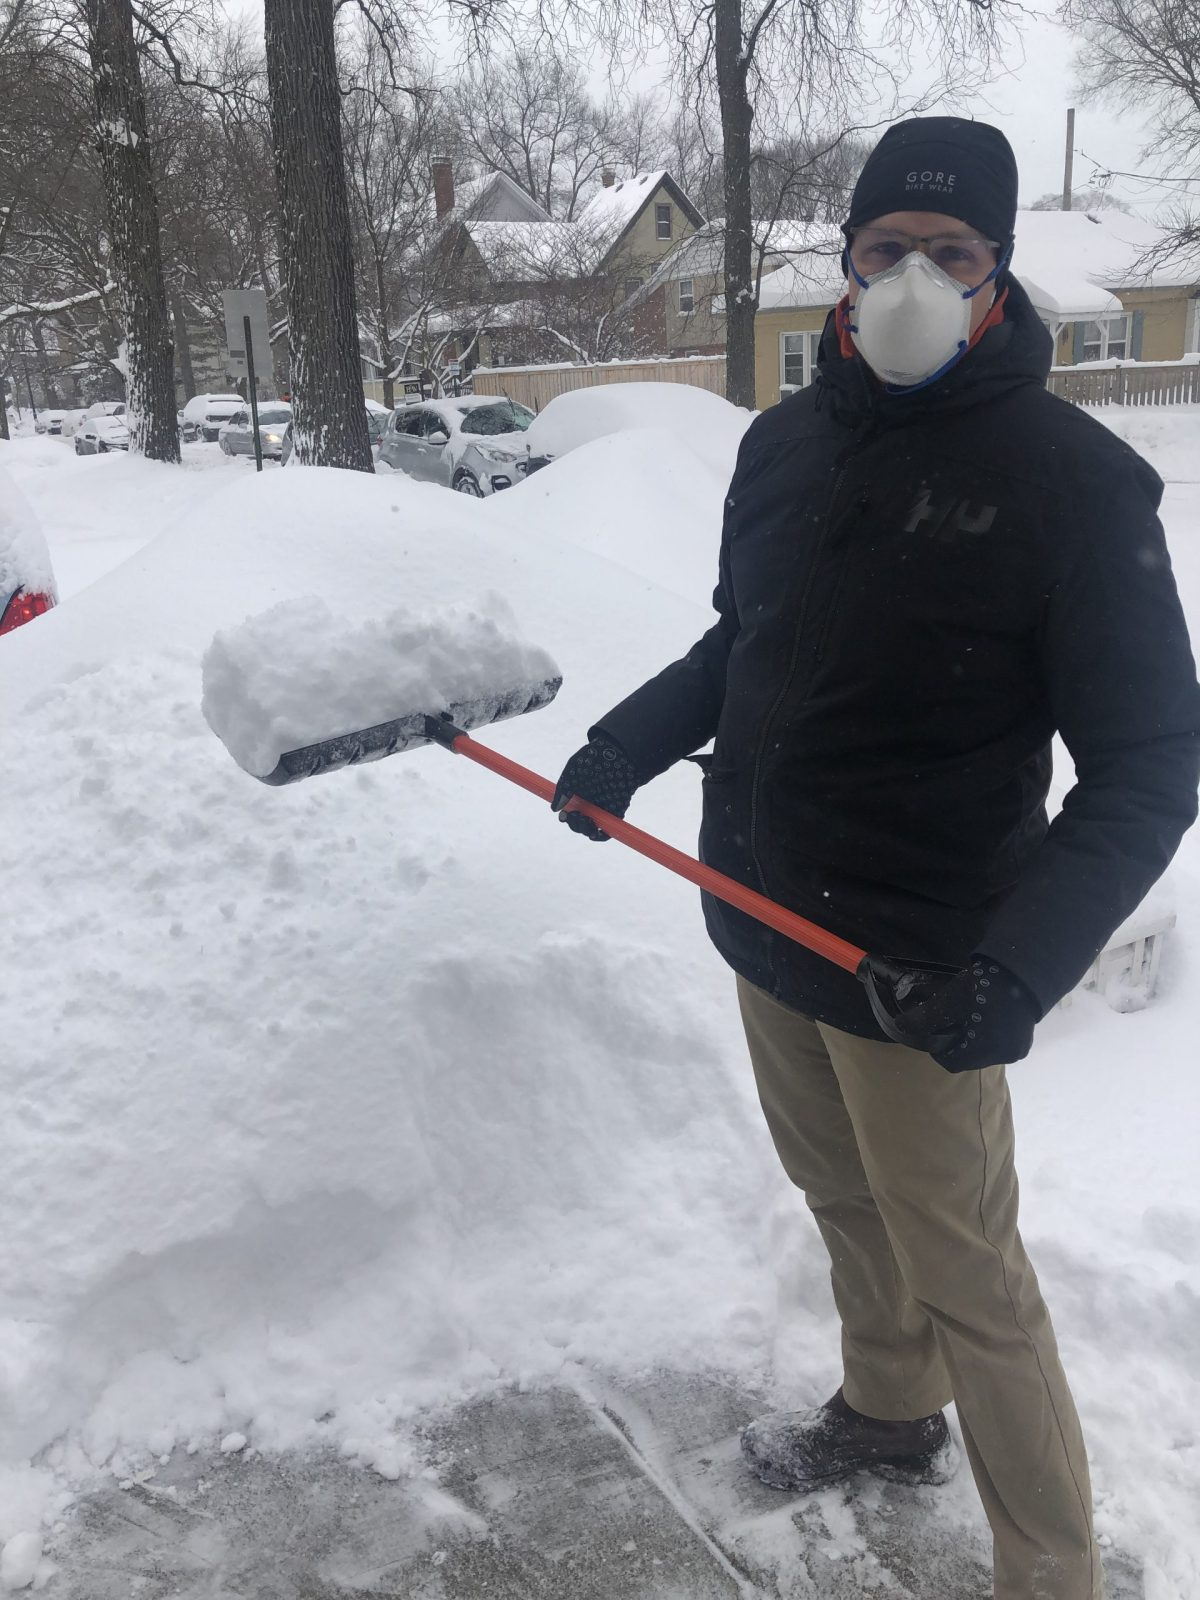 Michael Girard wearing a mask while shoveling snow